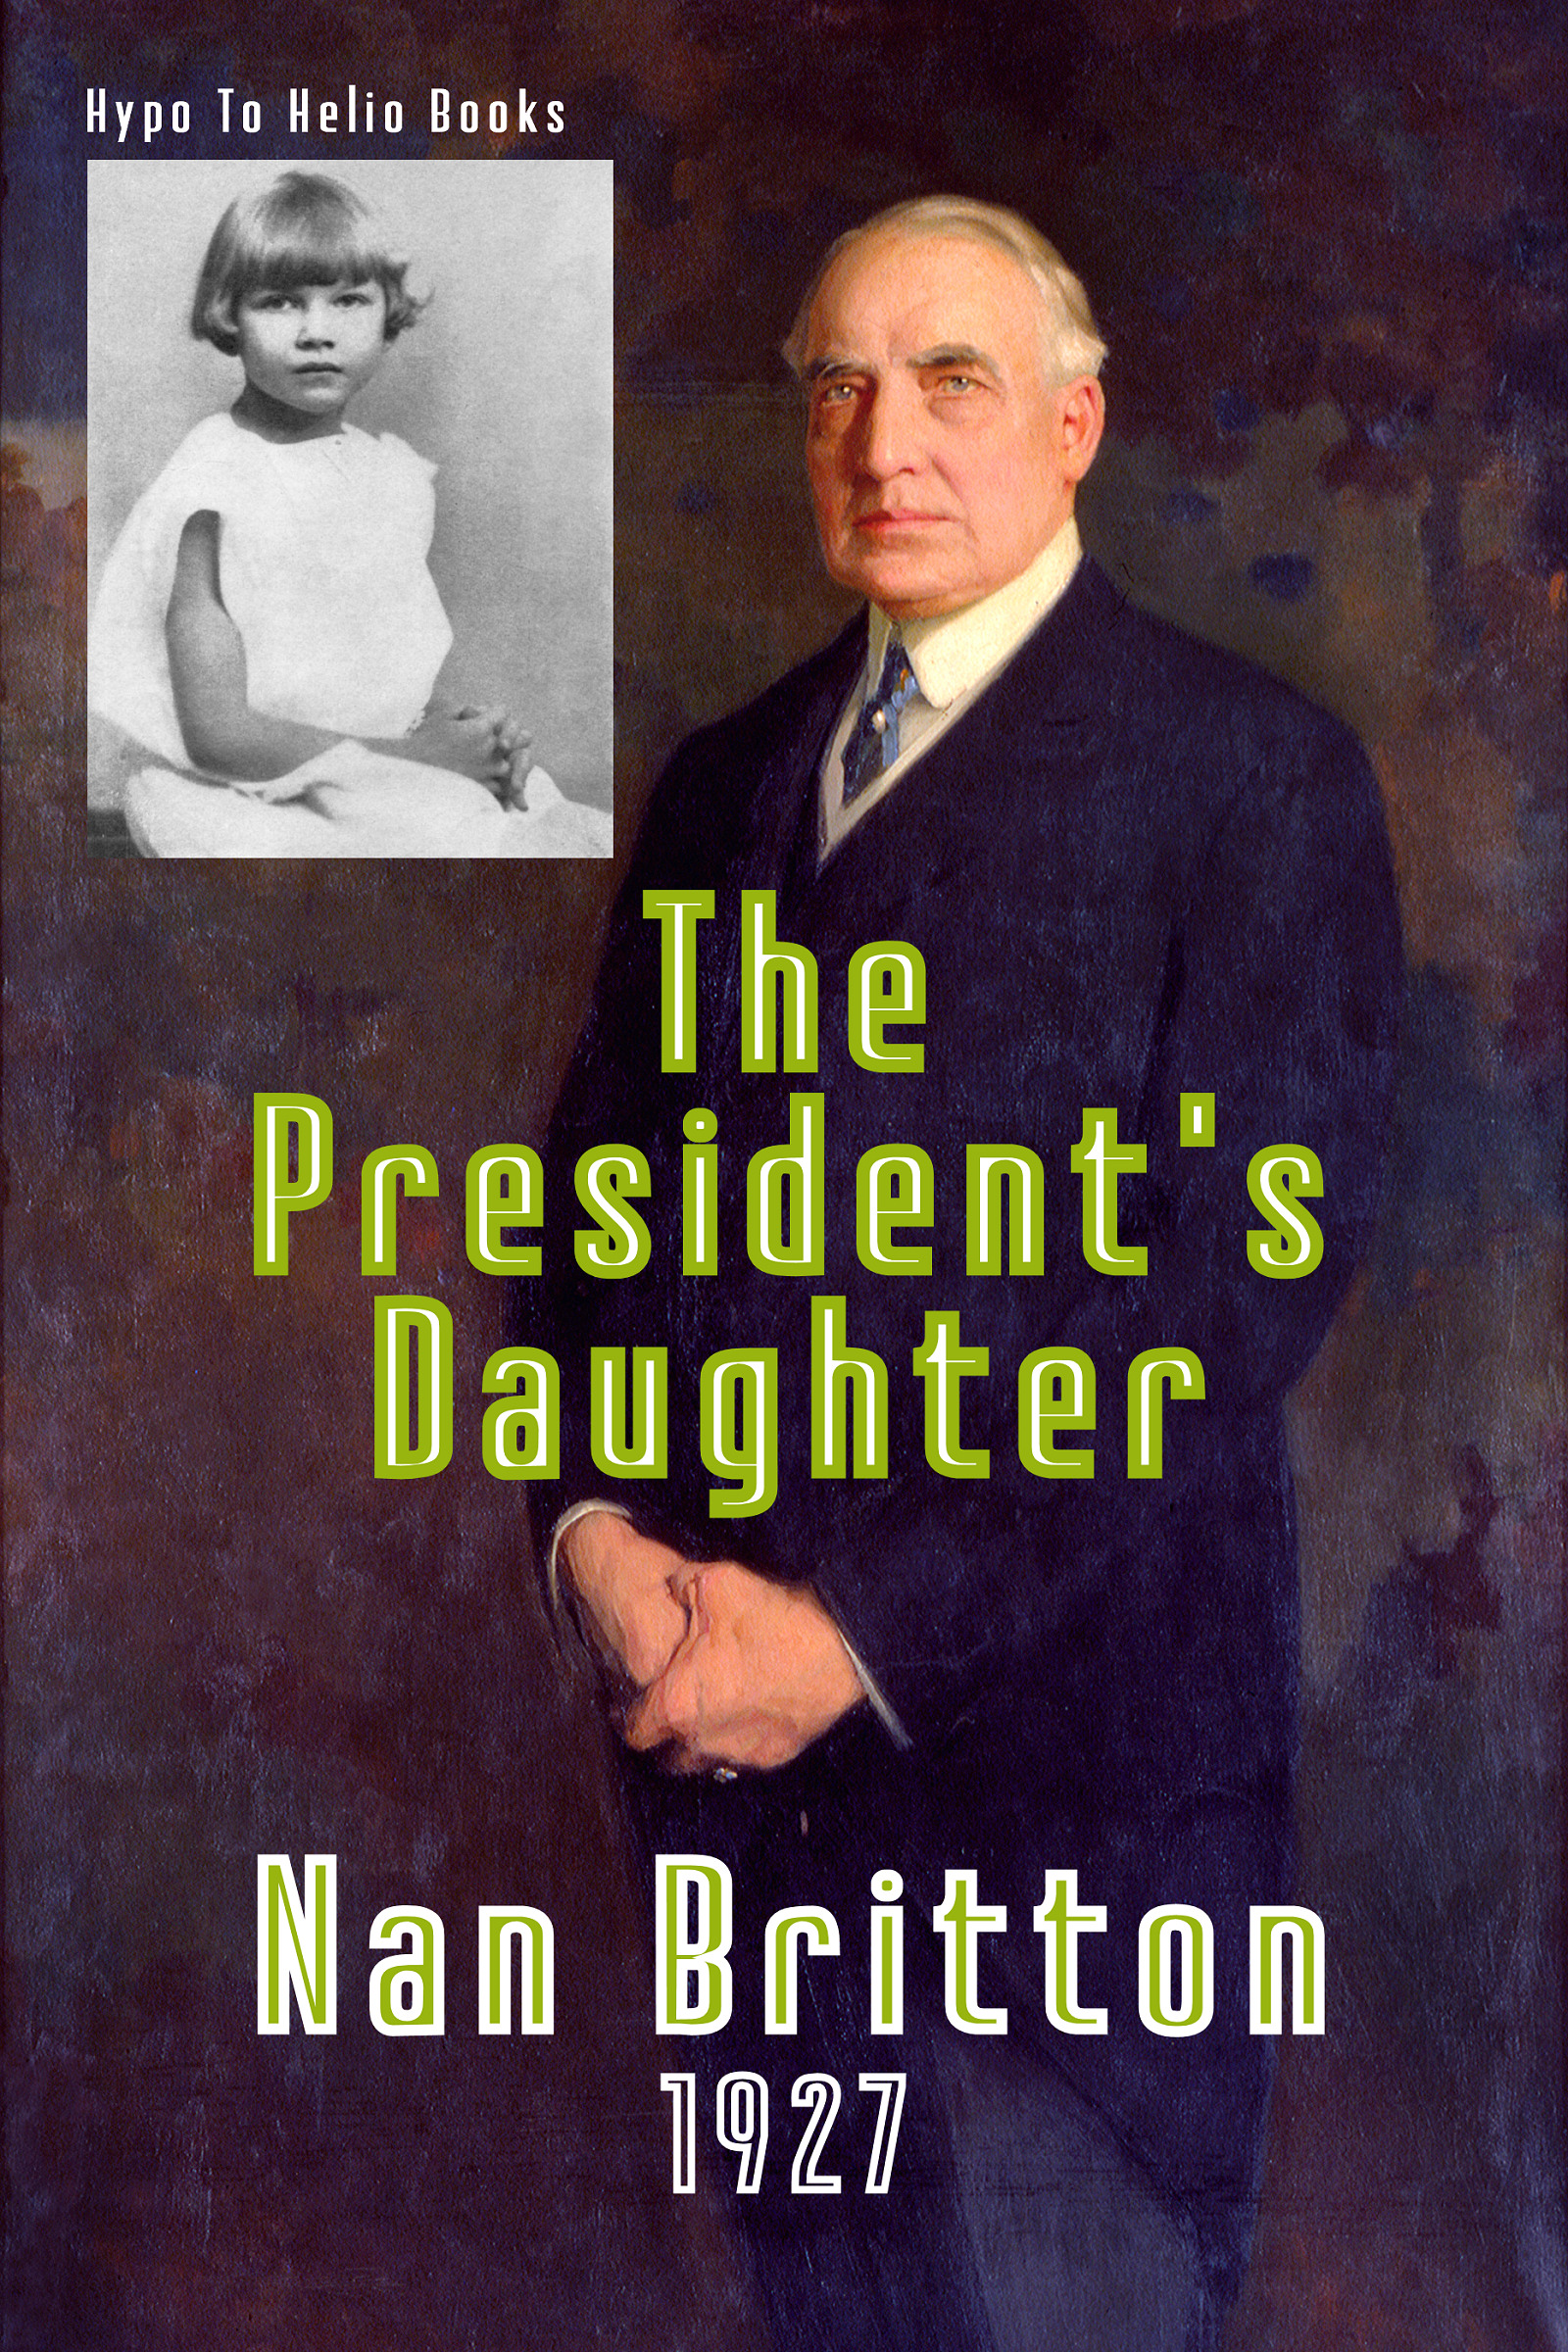 Nan Britton - The President's Daughter